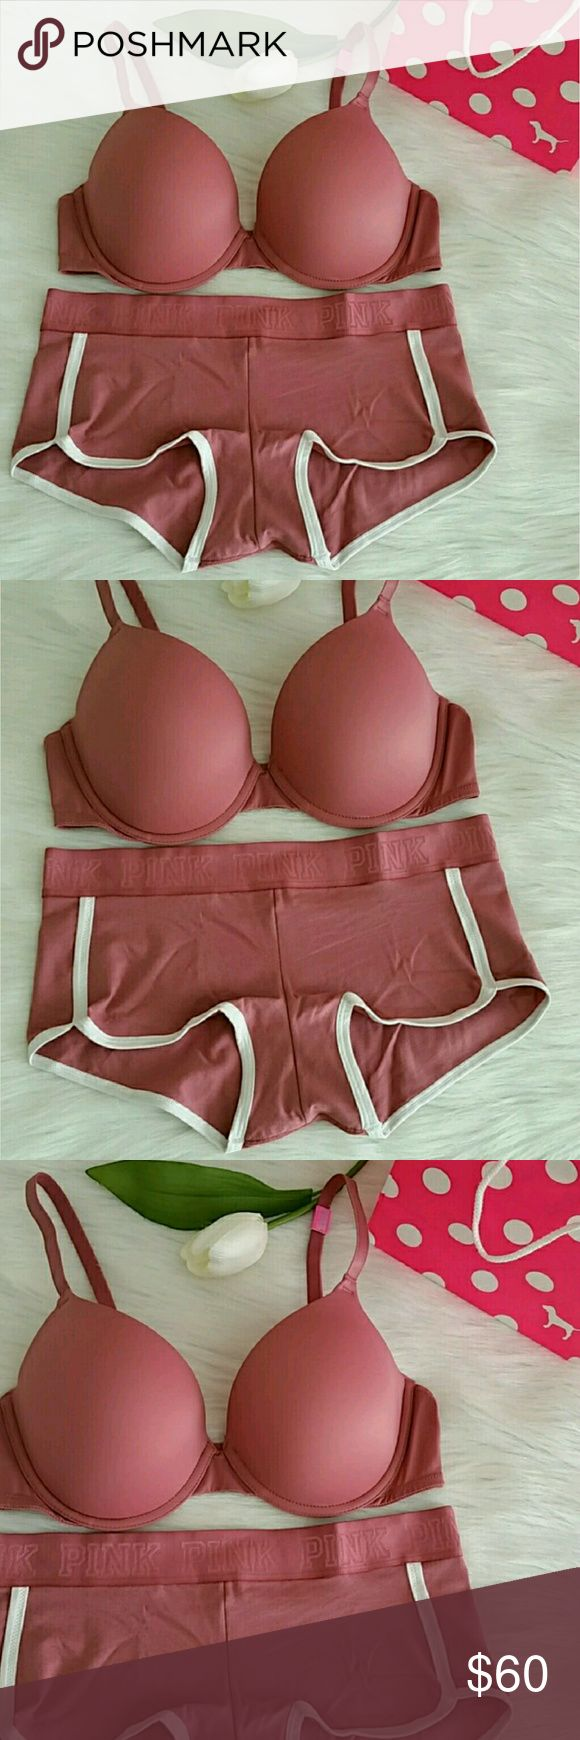 Nwt Pink Vs Push-up Bra + Boyshort. Brand new pink victoria secret push up Bra + Boyshort . Bra size 34B,  36C ,34D Boyshort Size Small ,Medium or Large.  Color soft begonia.  Smoke and pet free home.  FAST SHIPPING+ EXTRA GIFT.   I don't trade hun.  AVAILABLE. PINK Victoria's Secret Intimates & Sleepwear Panties